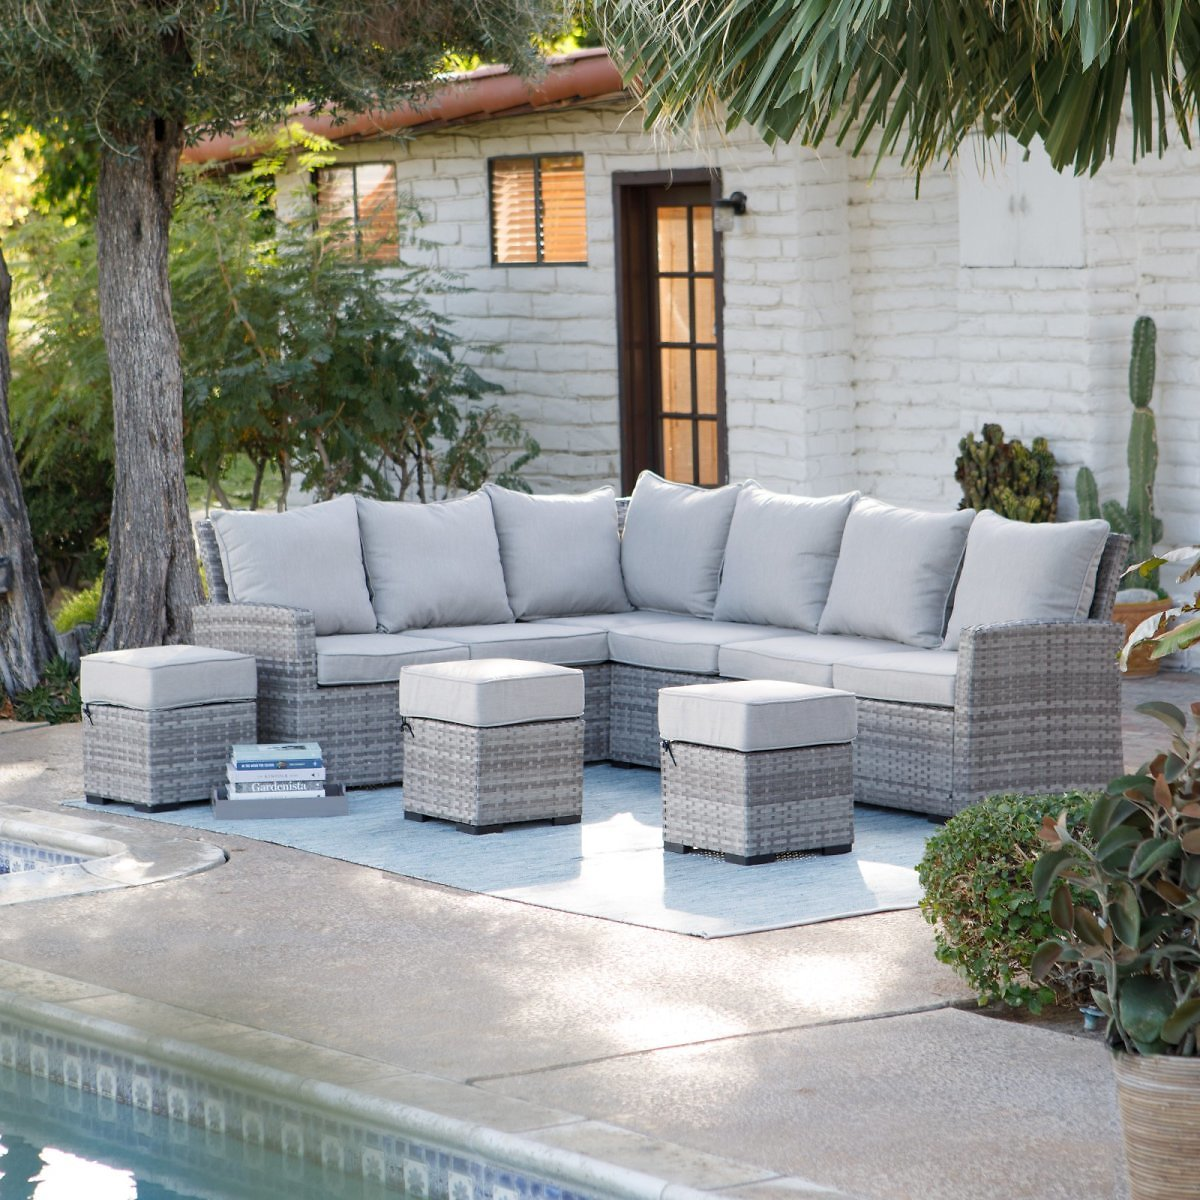 Belham Living Brookville All Weather Outdoor Wicker Sofa Sectional Set